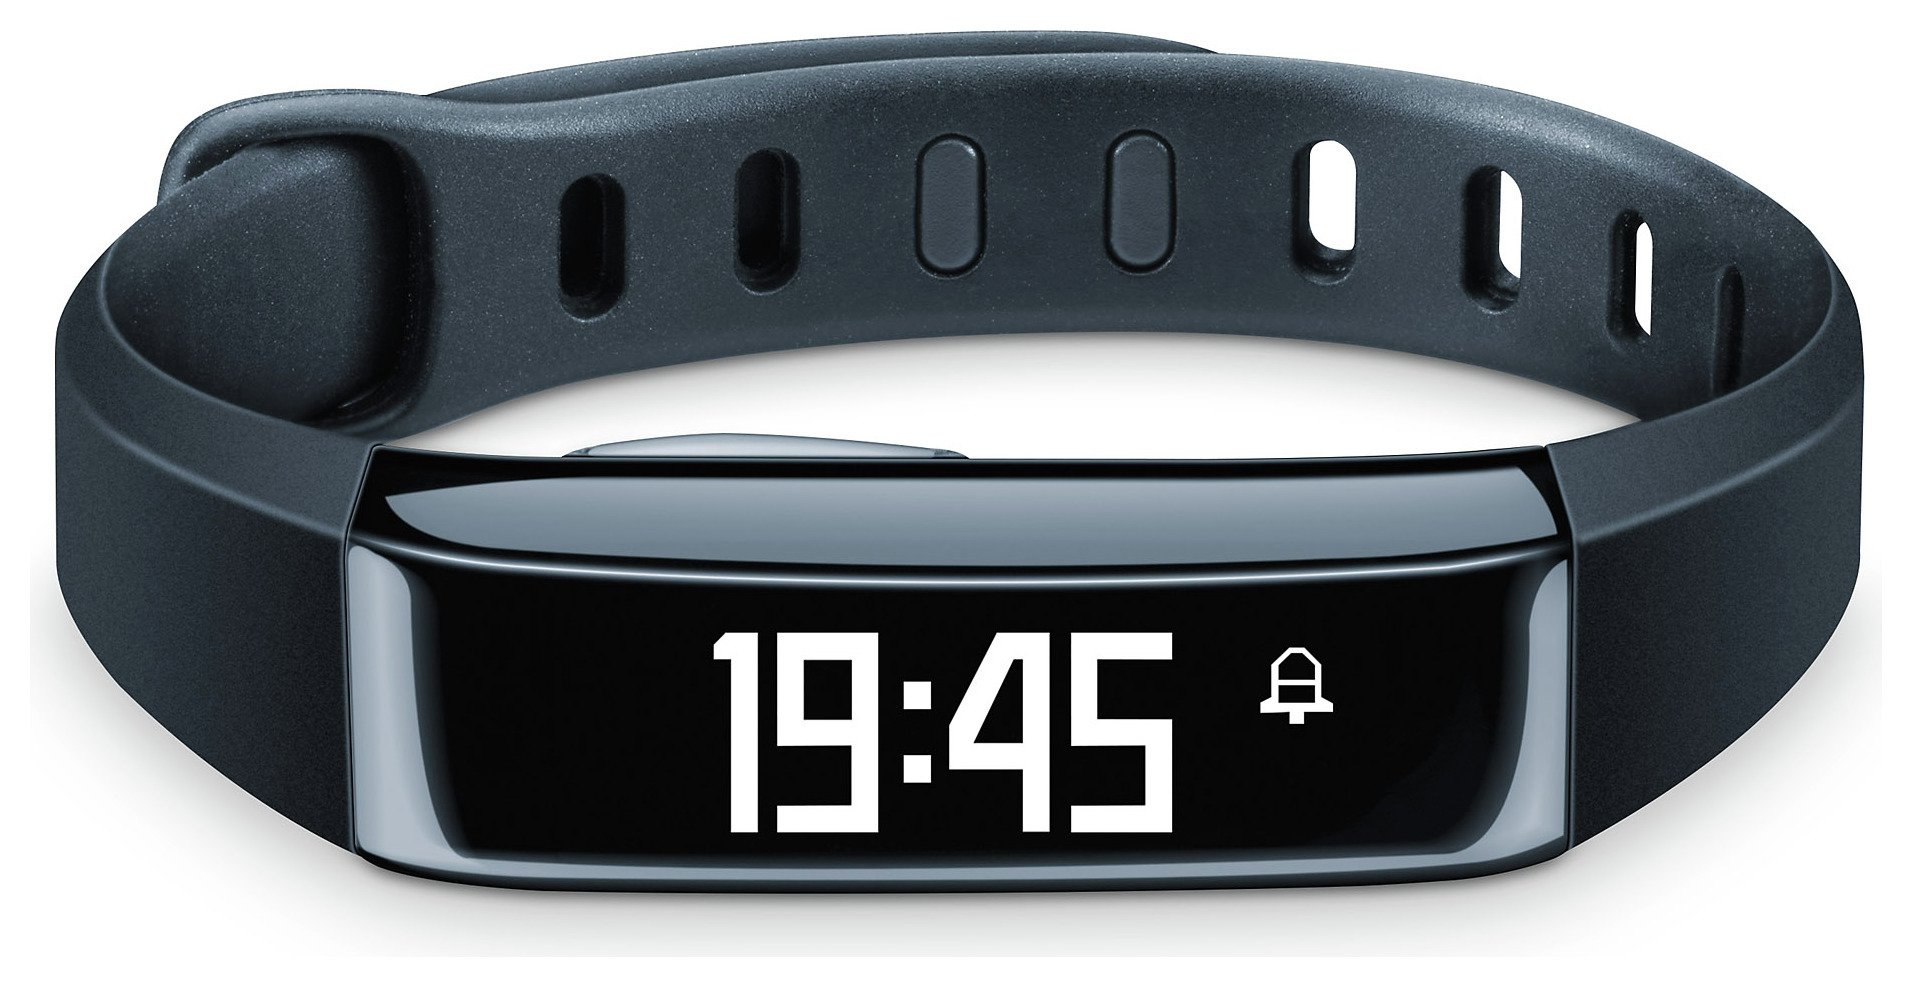 Image of Beurer AS 80 Fitness Tracker.